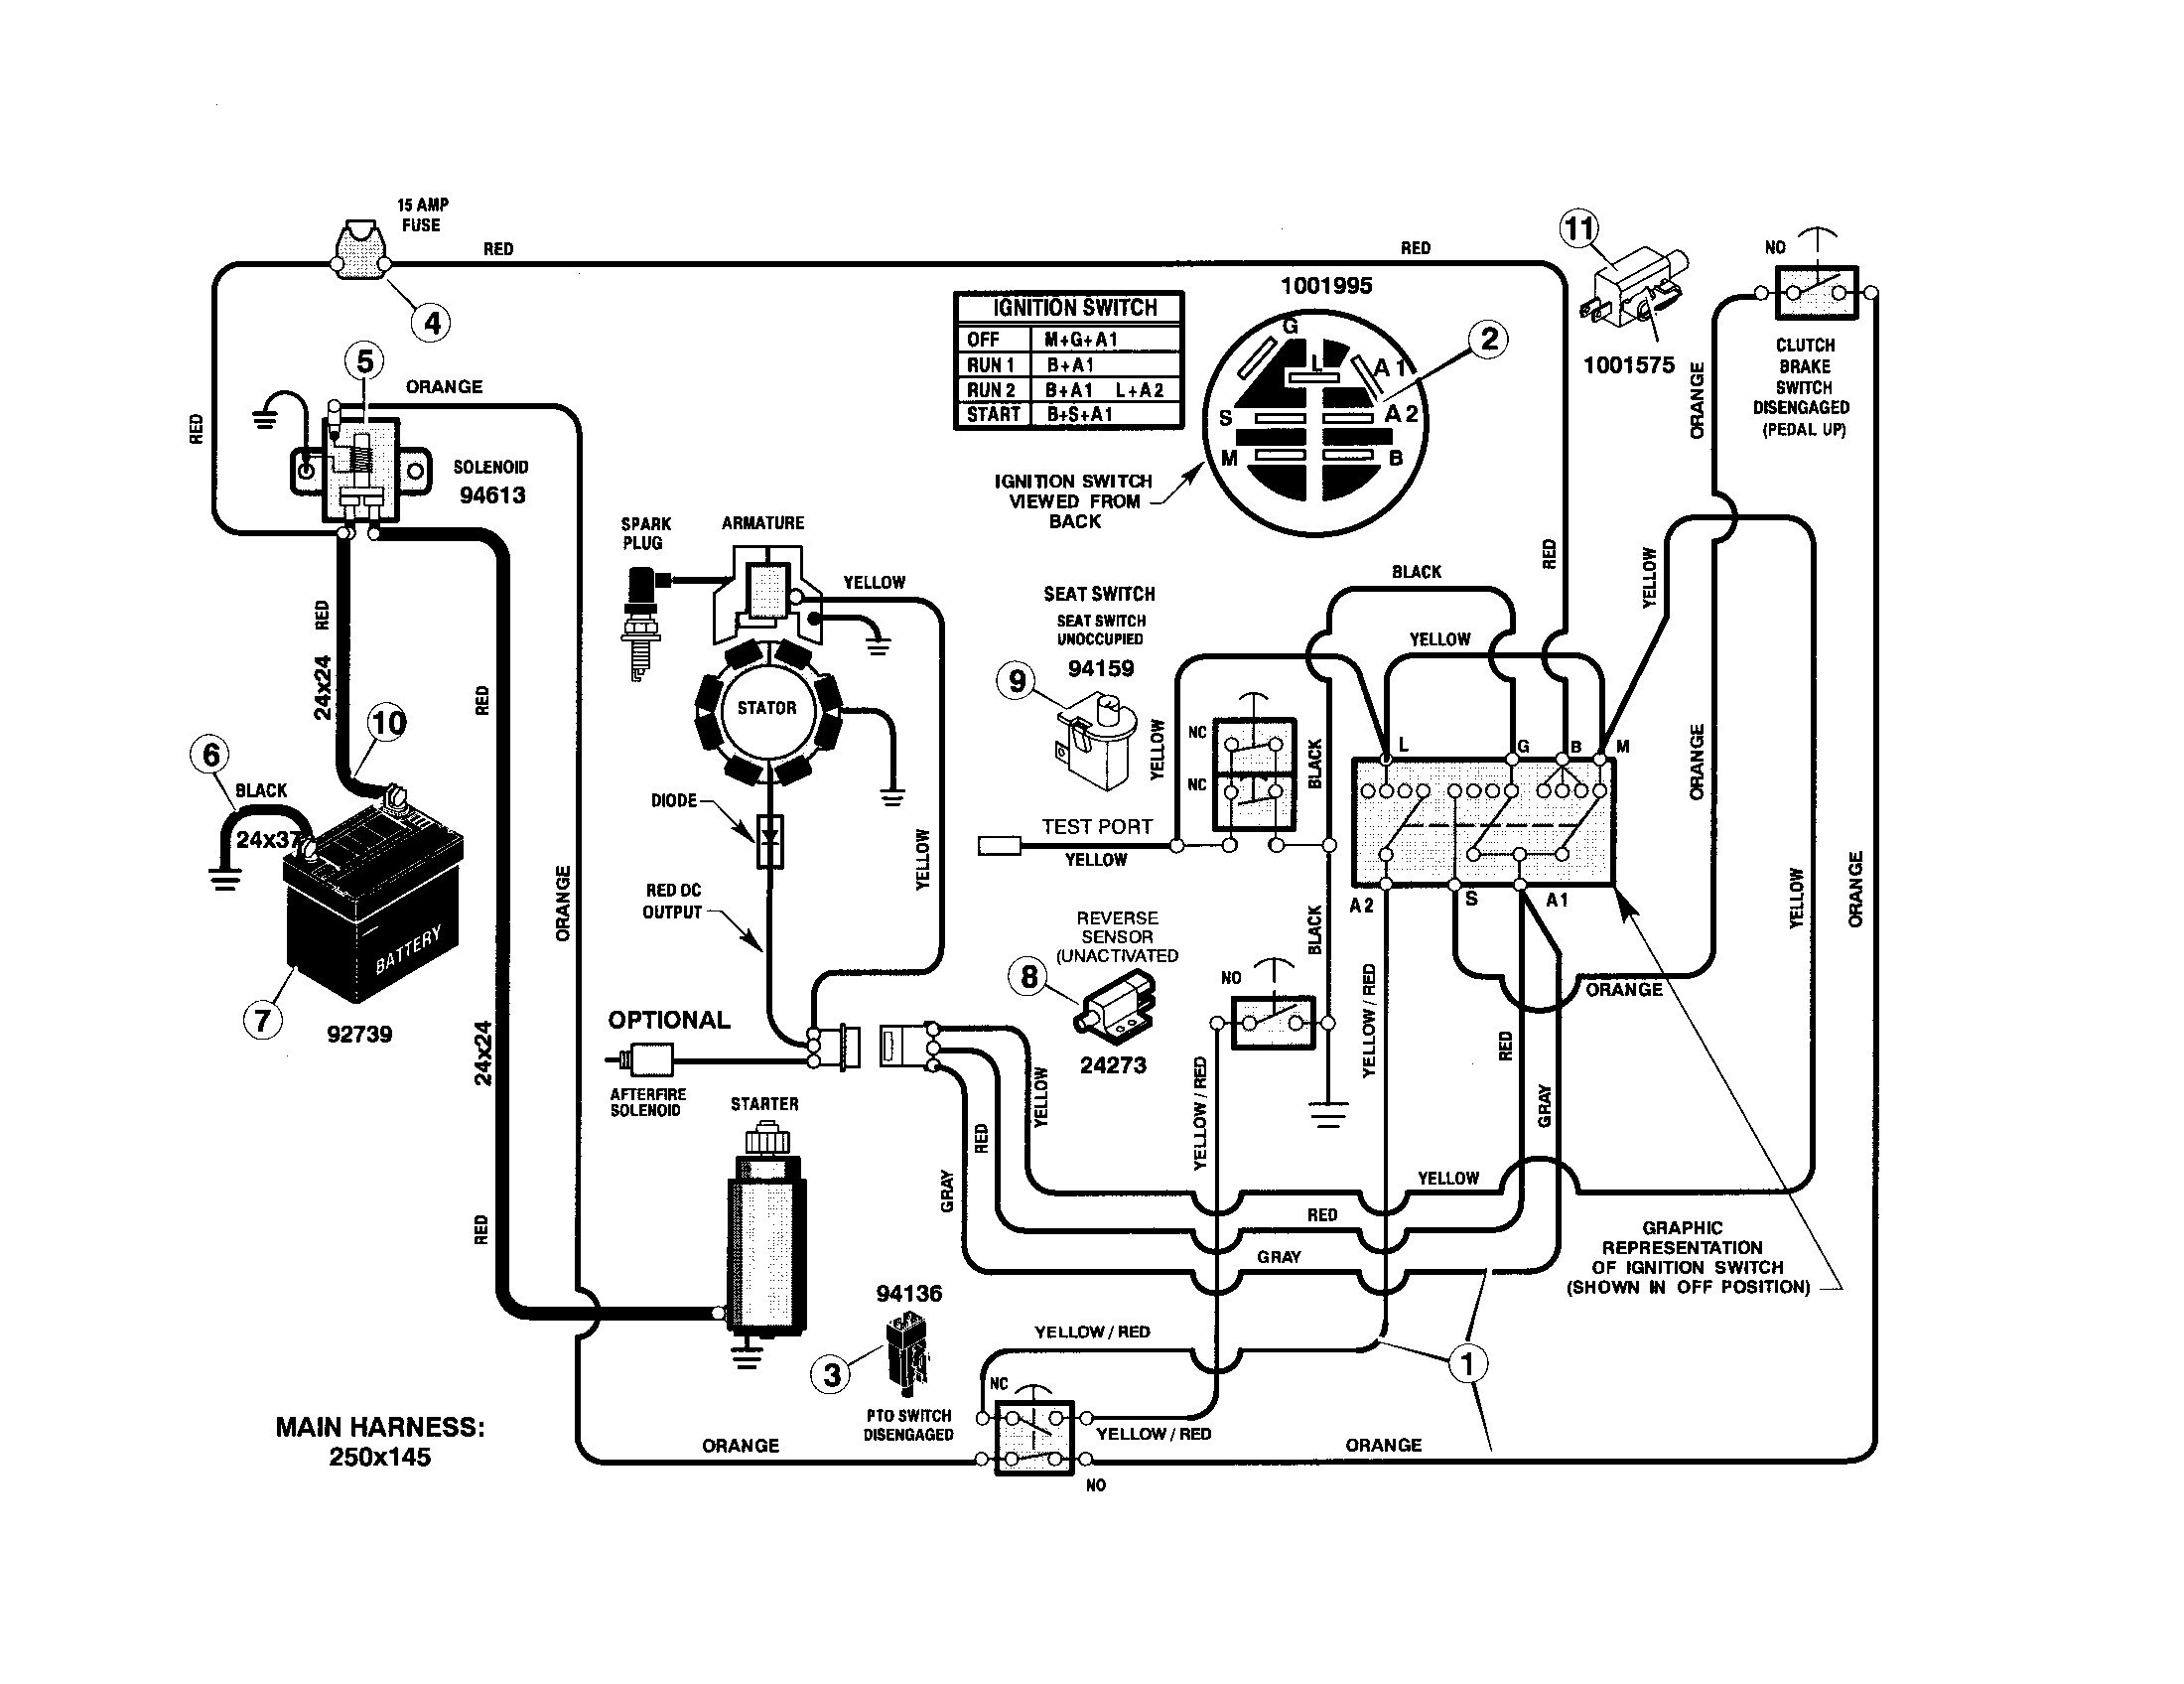 Wiring Diagram For Murray Riding Lawn Mower New Wiring Diagram For - Wiring Diagram For Murray Riding Lawn Mower